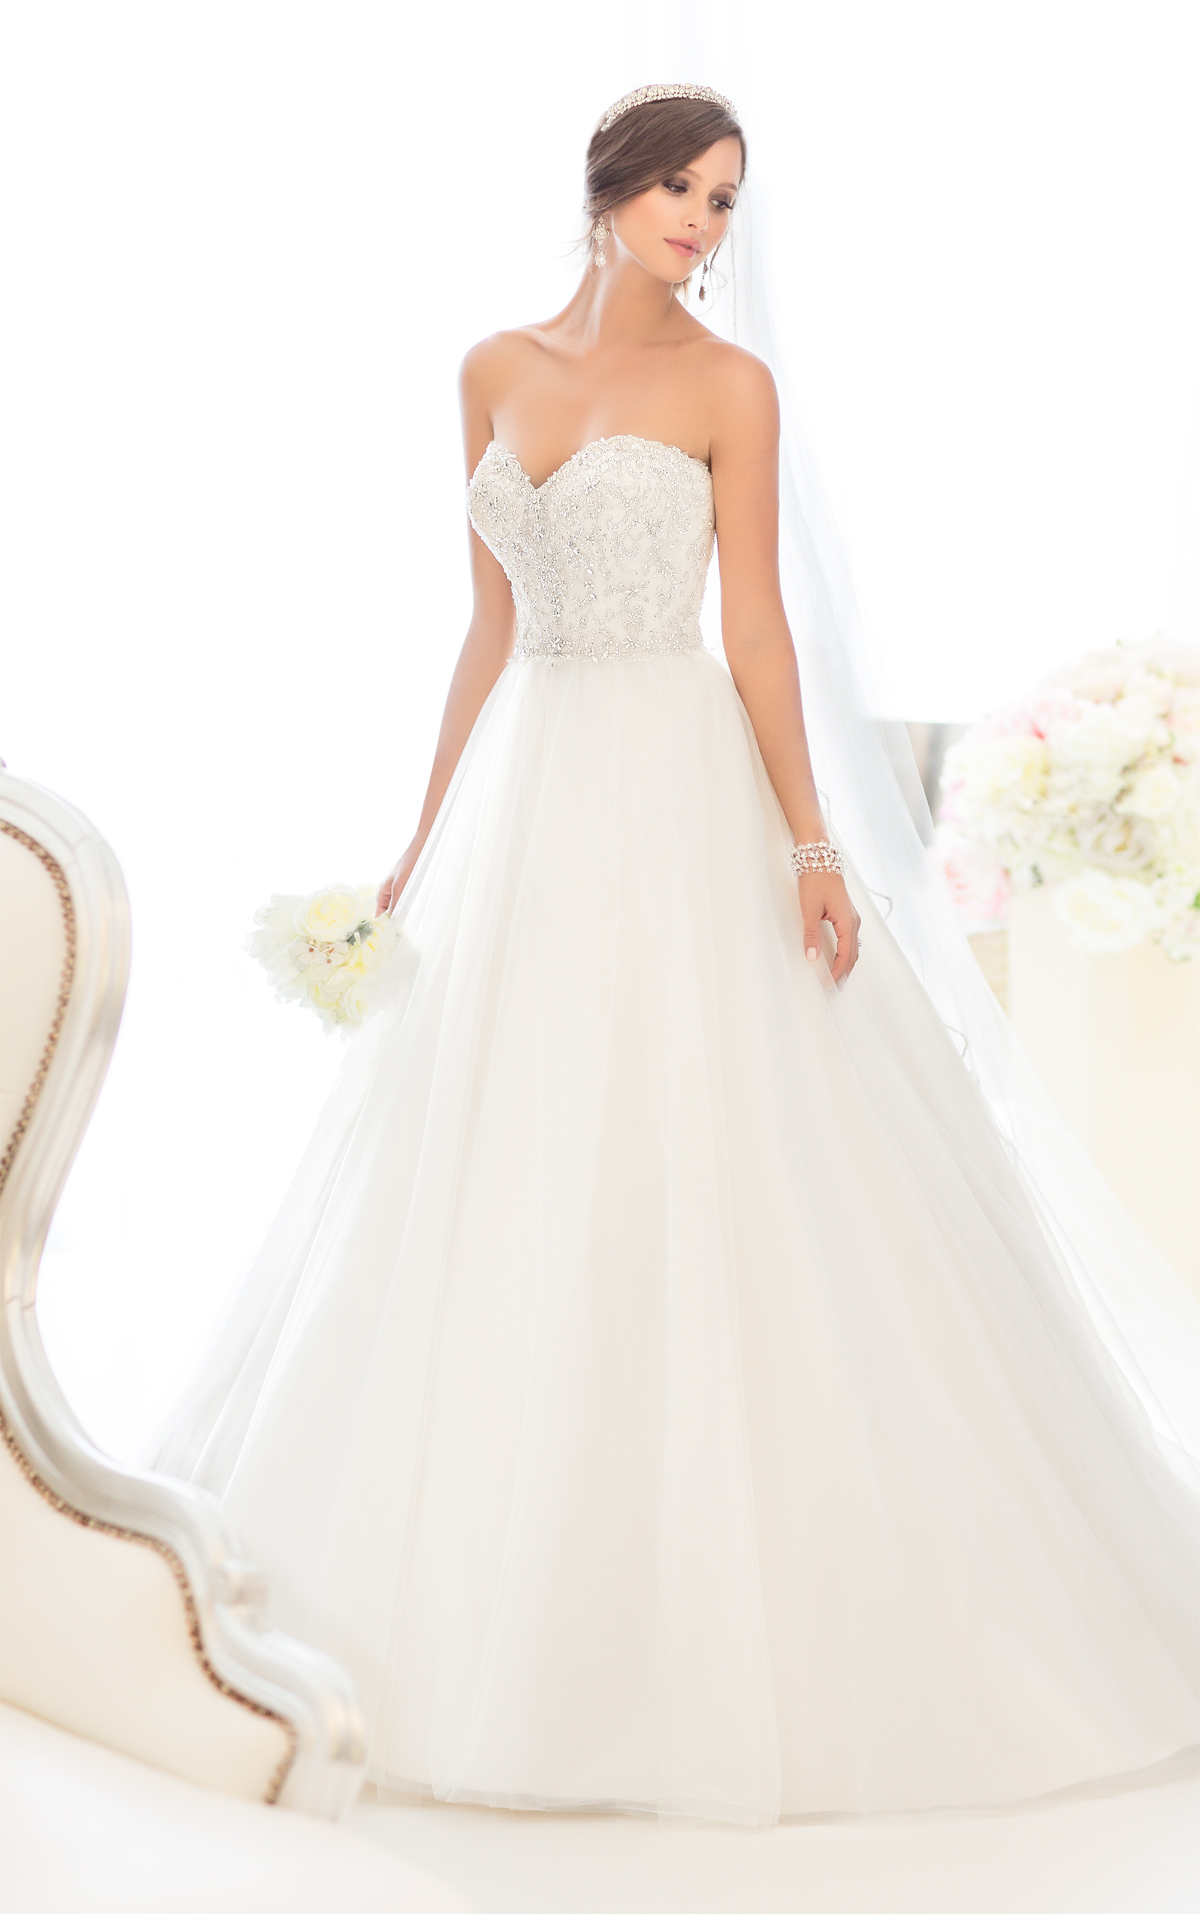 Essense of Australia Wedding Dresses 2014 Collection - MODwedding